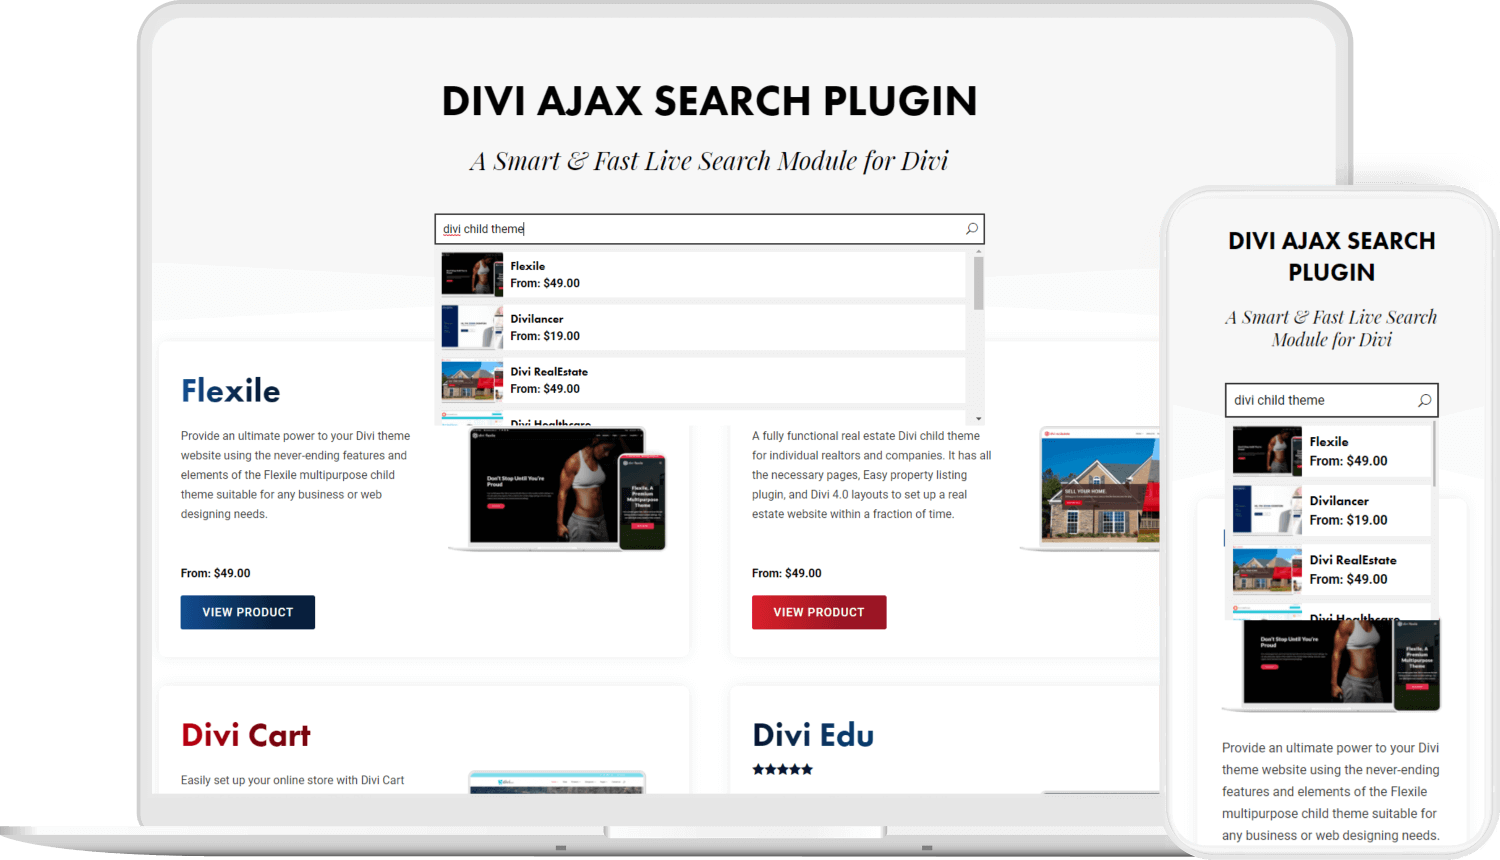 Divi Ajax Search